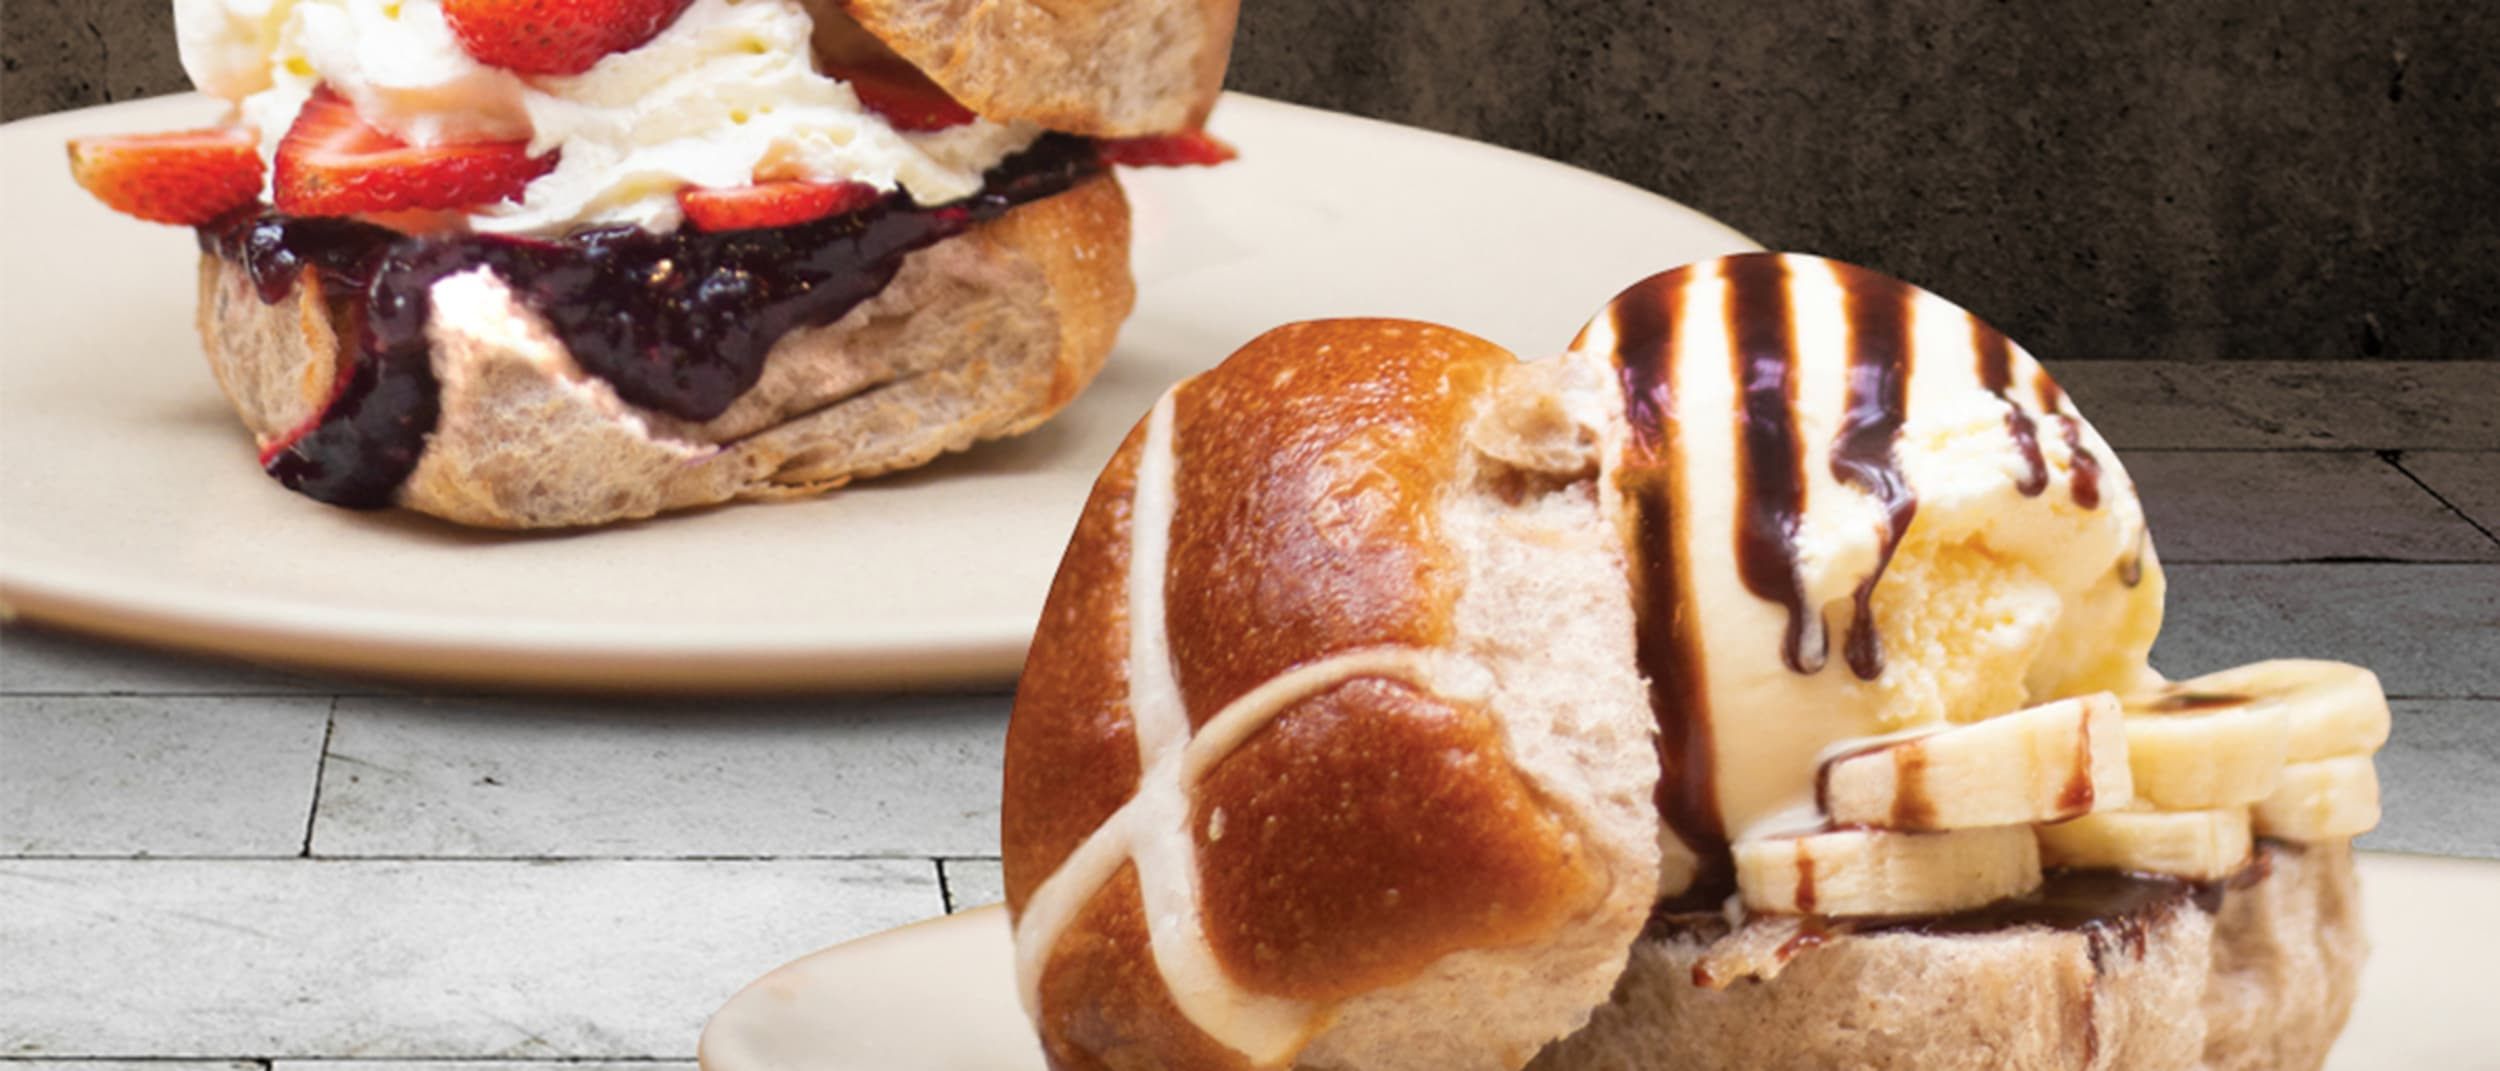 The Coffee Emporium's Loaded Hot Cross Buns have arrived